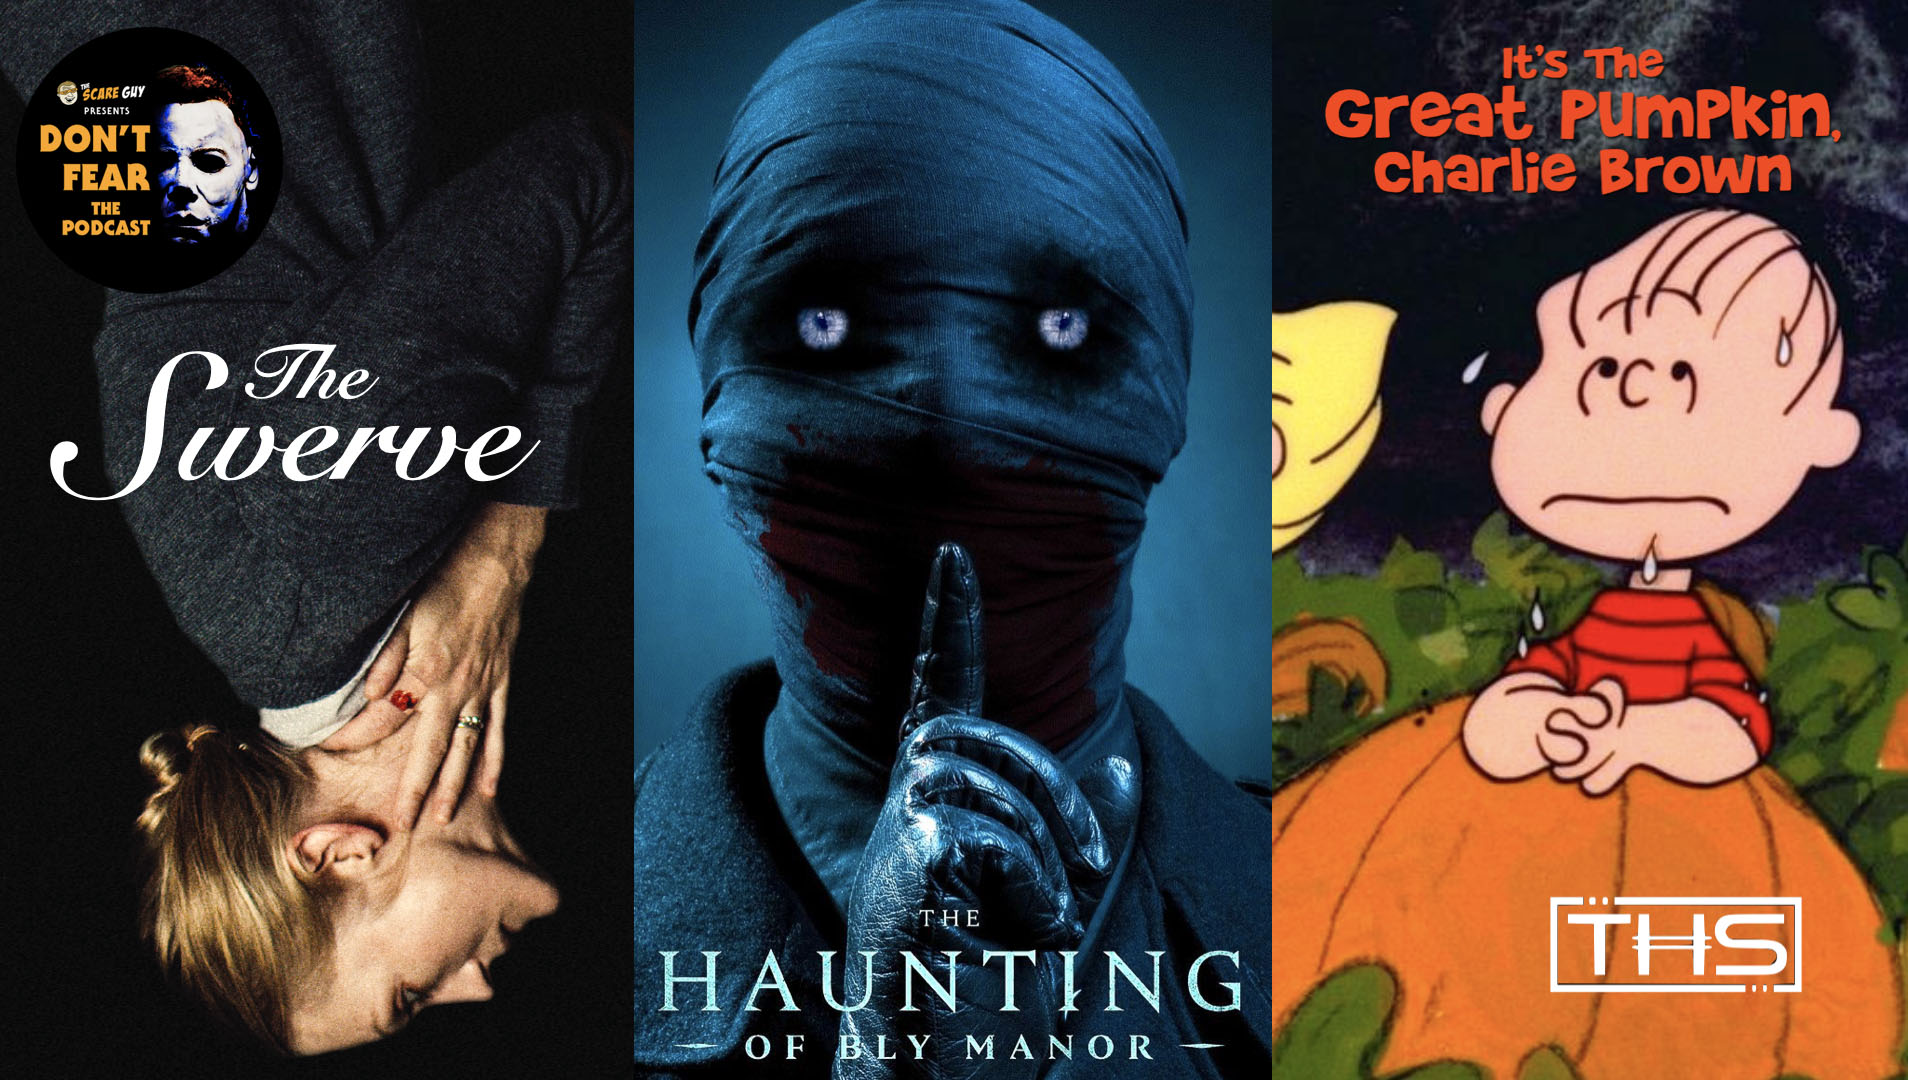 Don T Fear The Podcast The Swerve The Haunting Of Bly Manor And Our Favorite Halloween Shows The Con Guy